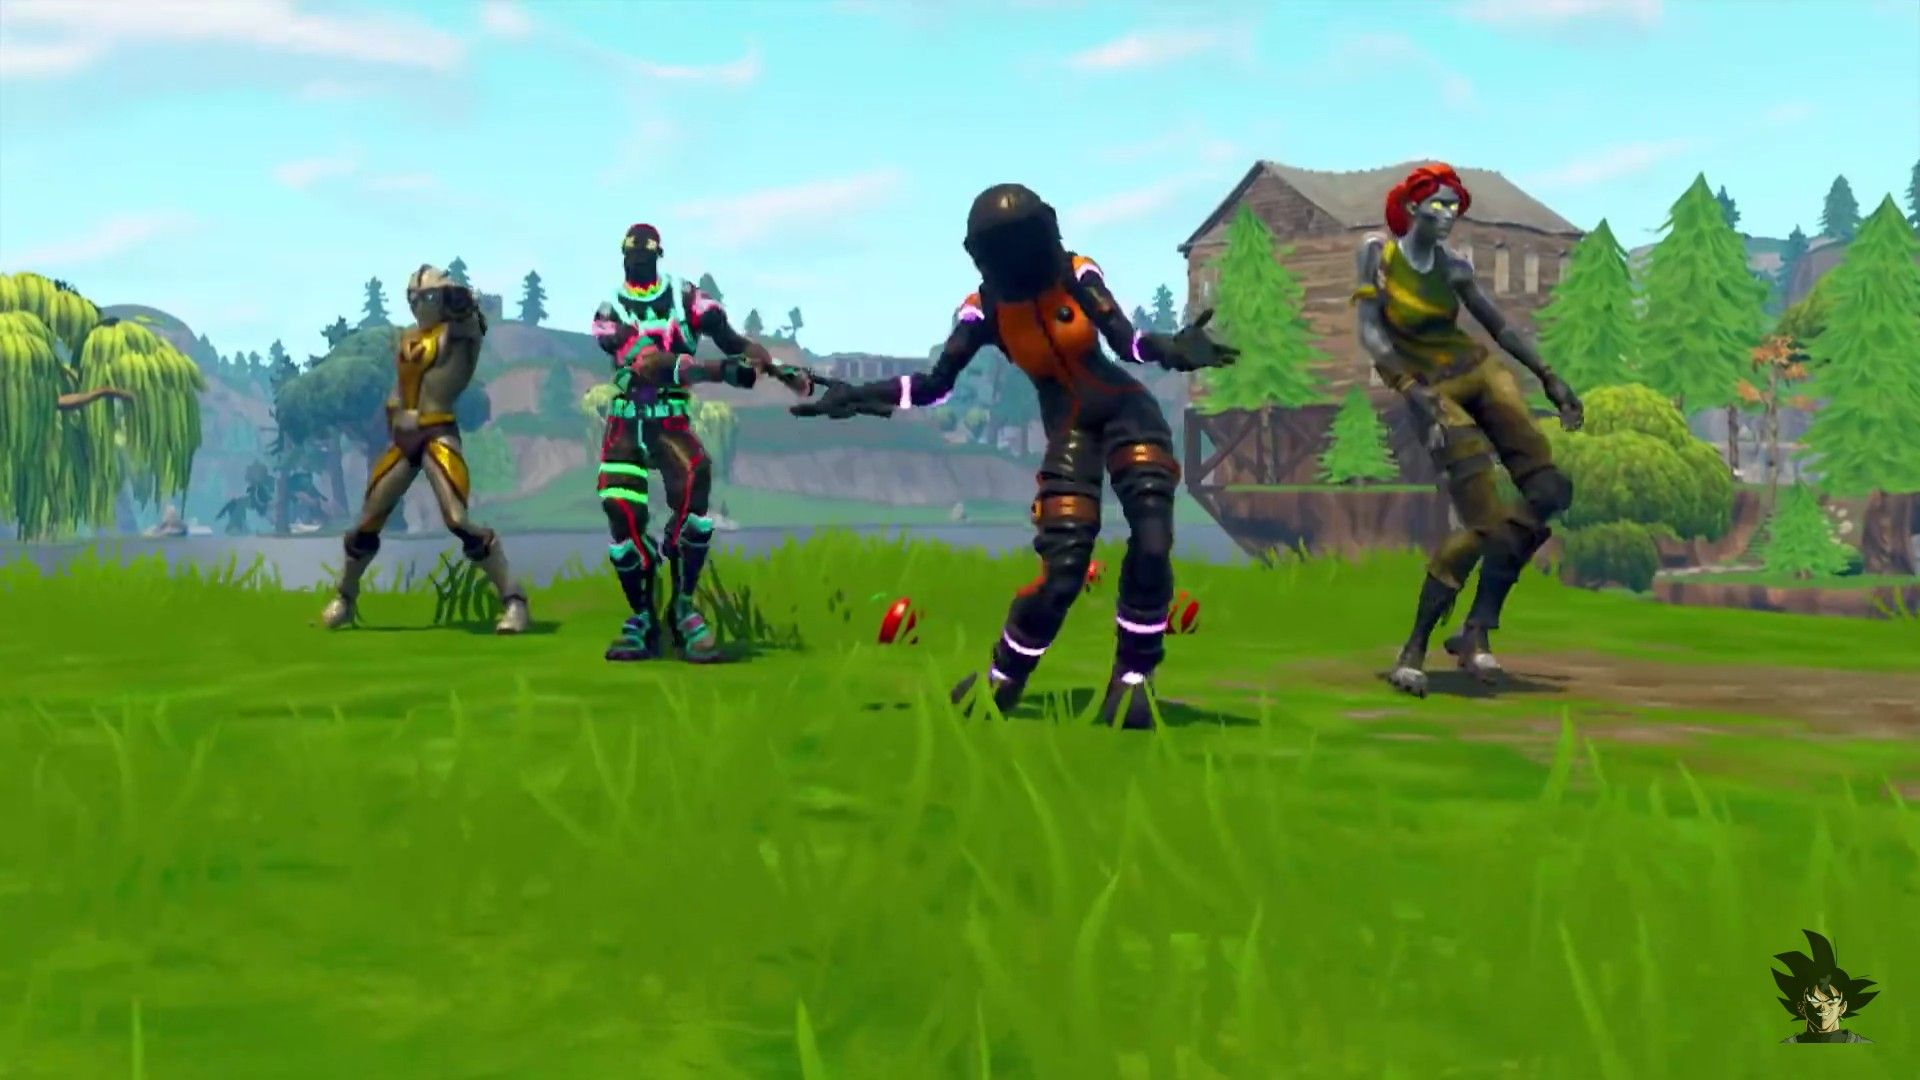 Pin by Kairan on Fortnite Epic games, Fortnite, Good movies